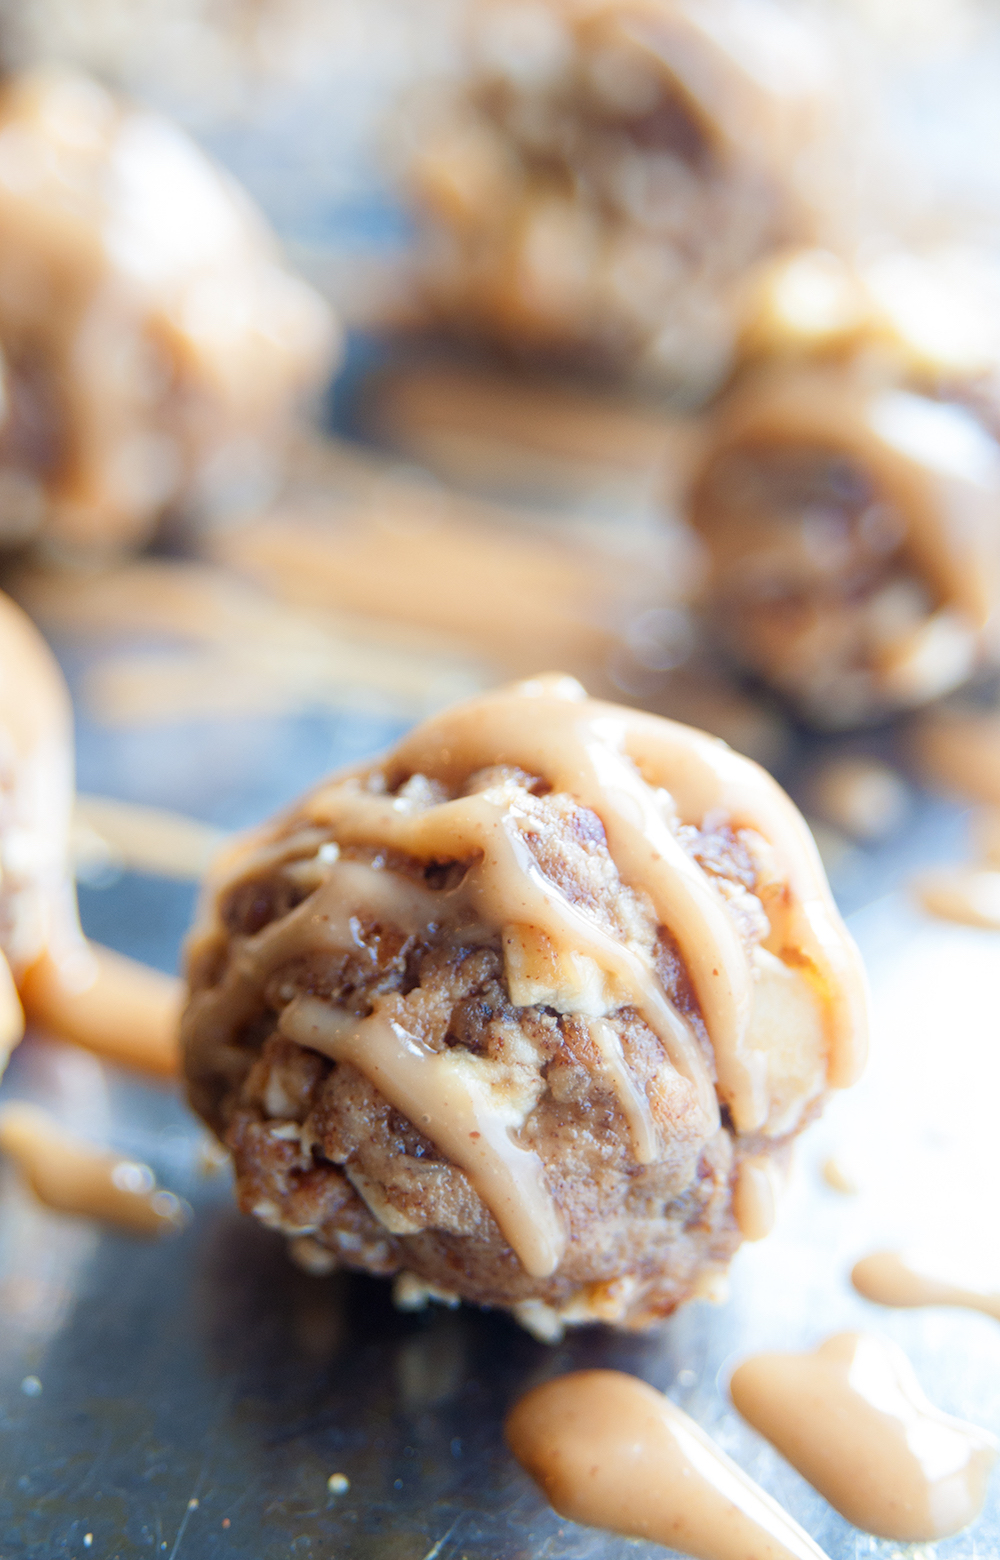 Nut free and sugar free, these 4 ingredient bliss balls are a healthy school lunch idea! Sweetened with dates and apples this nut free bliss balls recipe tastes like dessert but is guilt free! Perfect for those living a clean eating diet lifestyle!